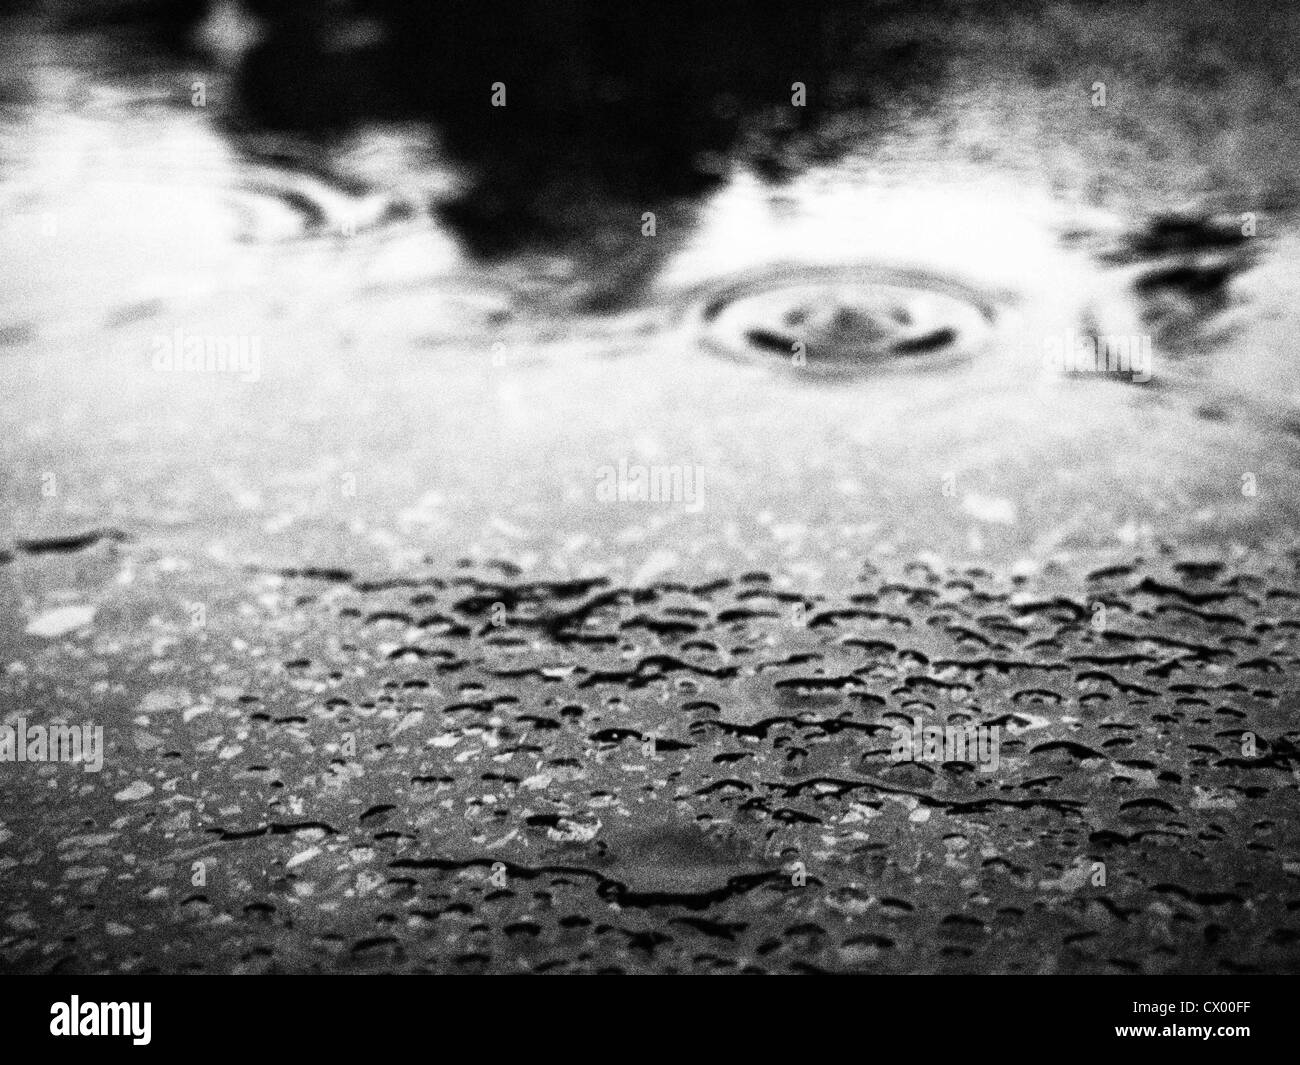 Black and white of pavement, puddle and raindrops - Stock Image